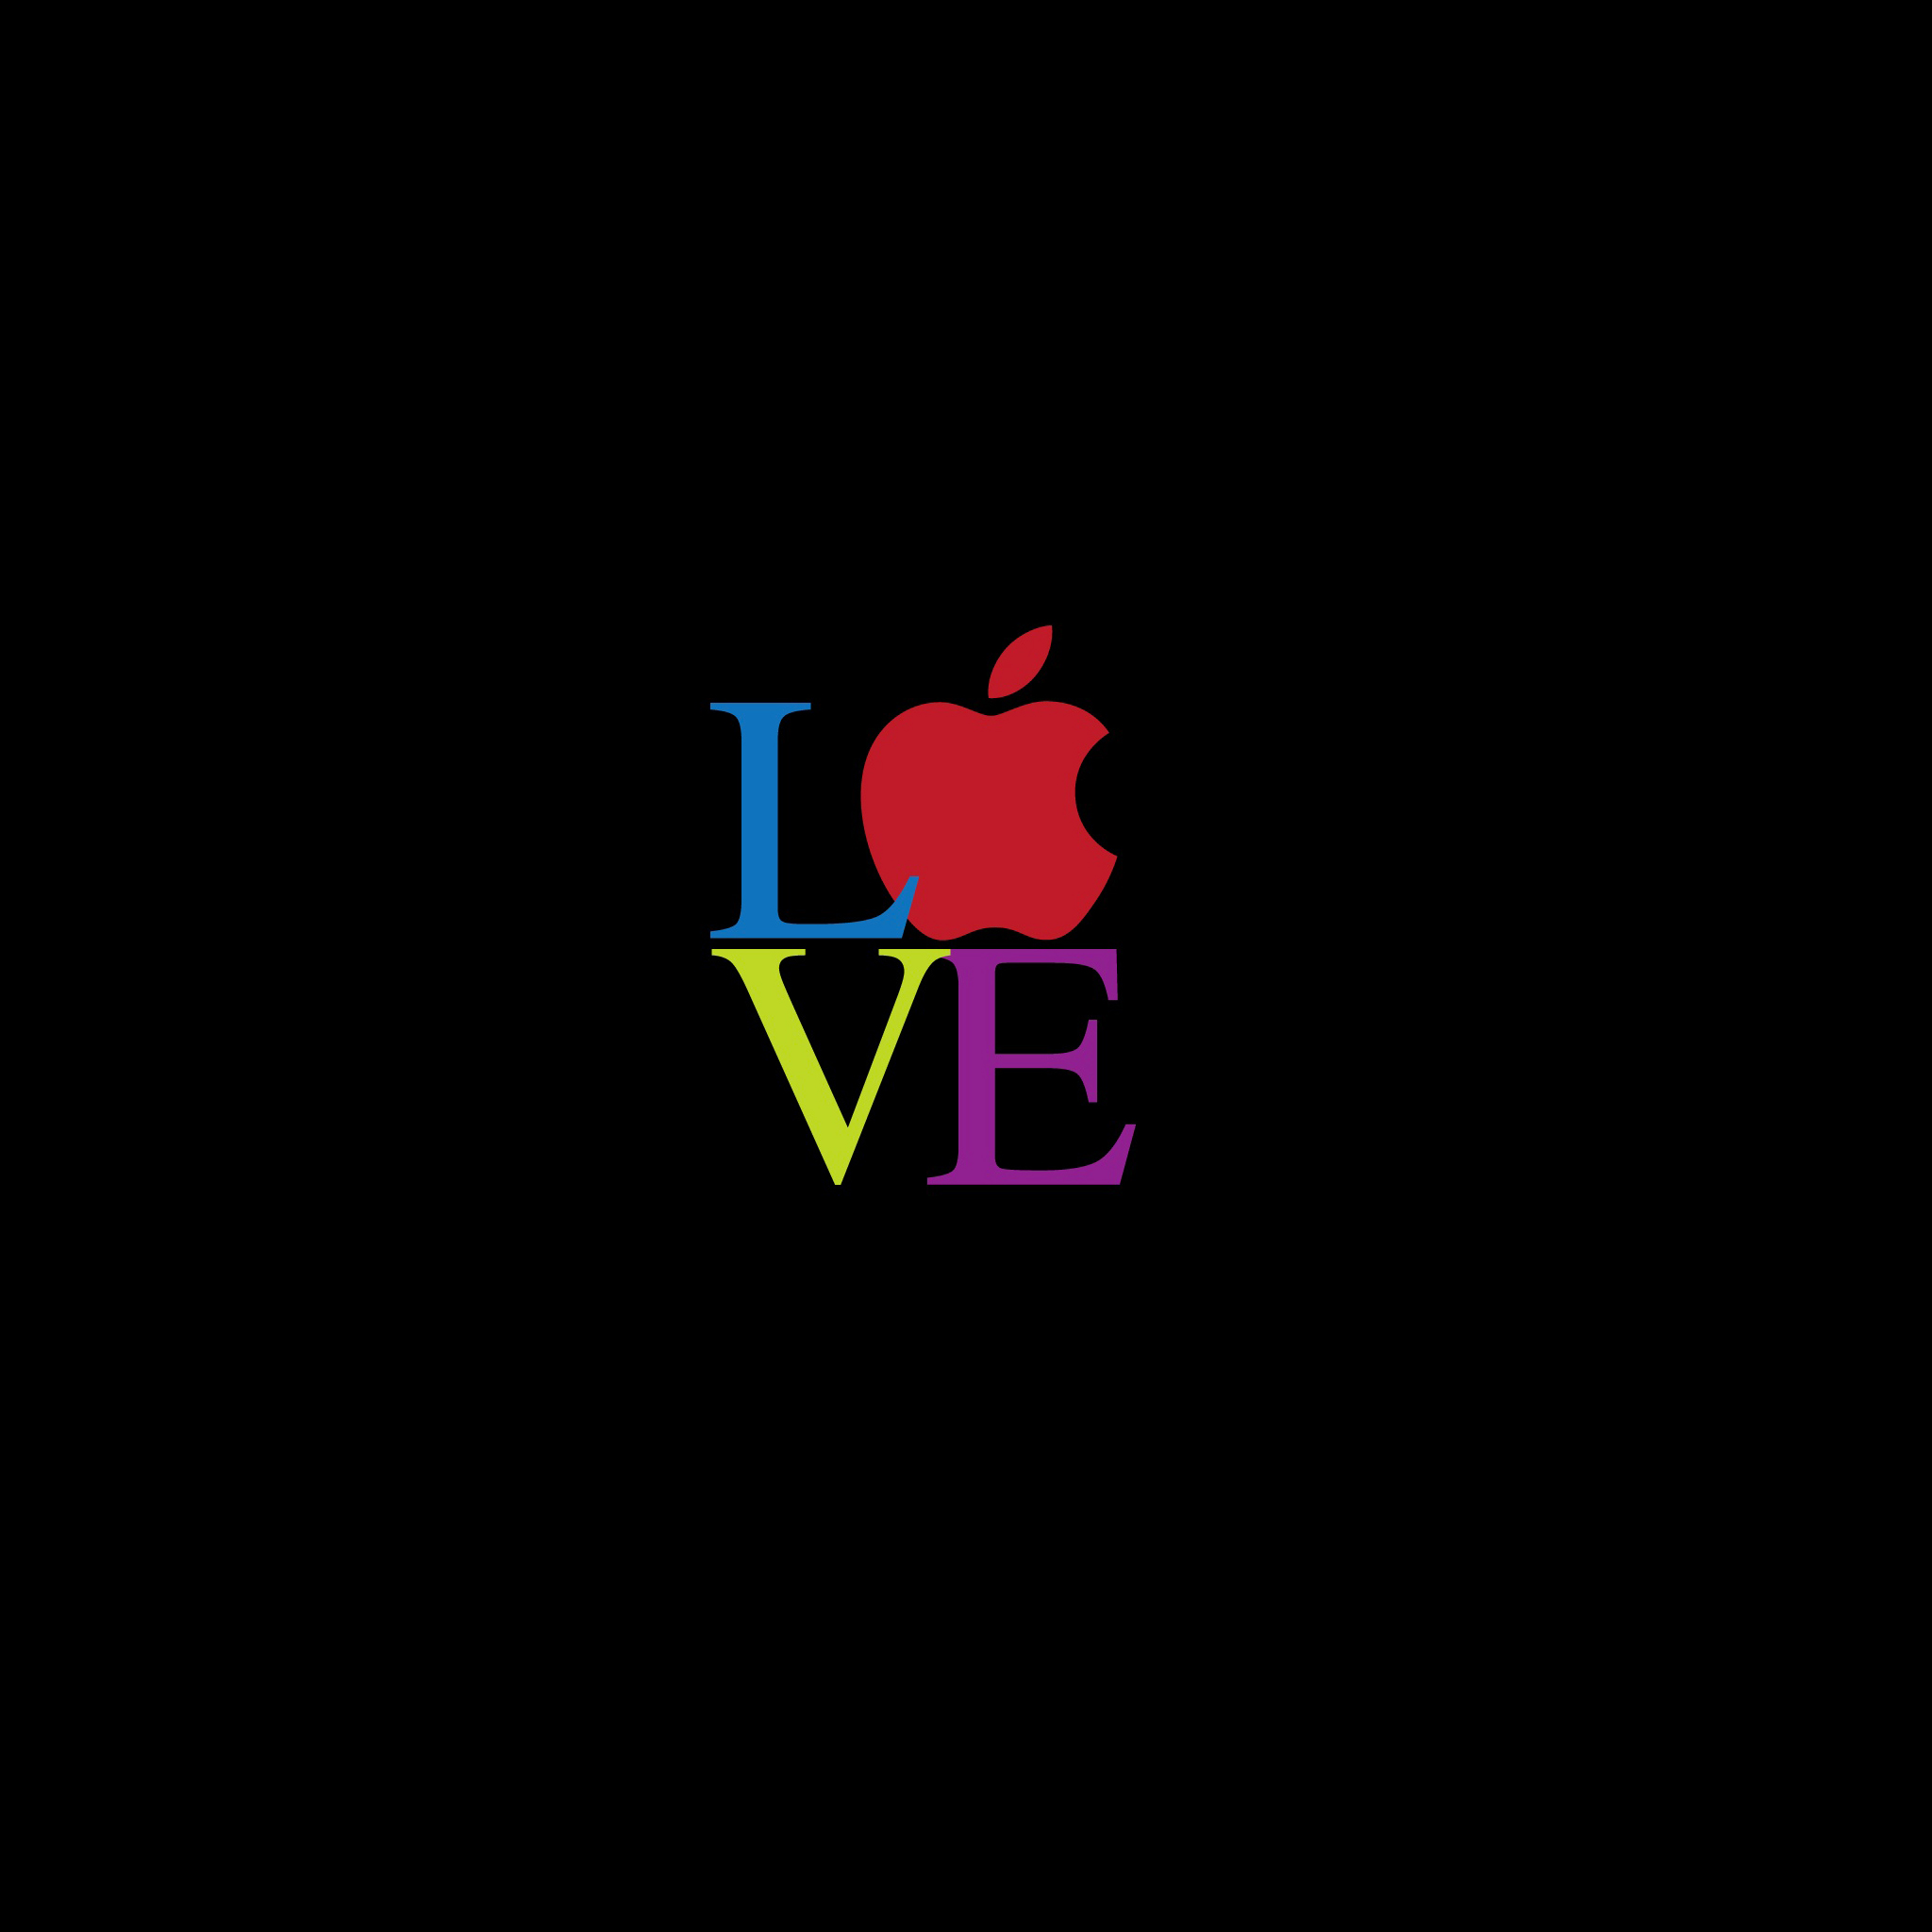 love Apple 3Wallpapers ipad Retina Love Apple   iPad Retina